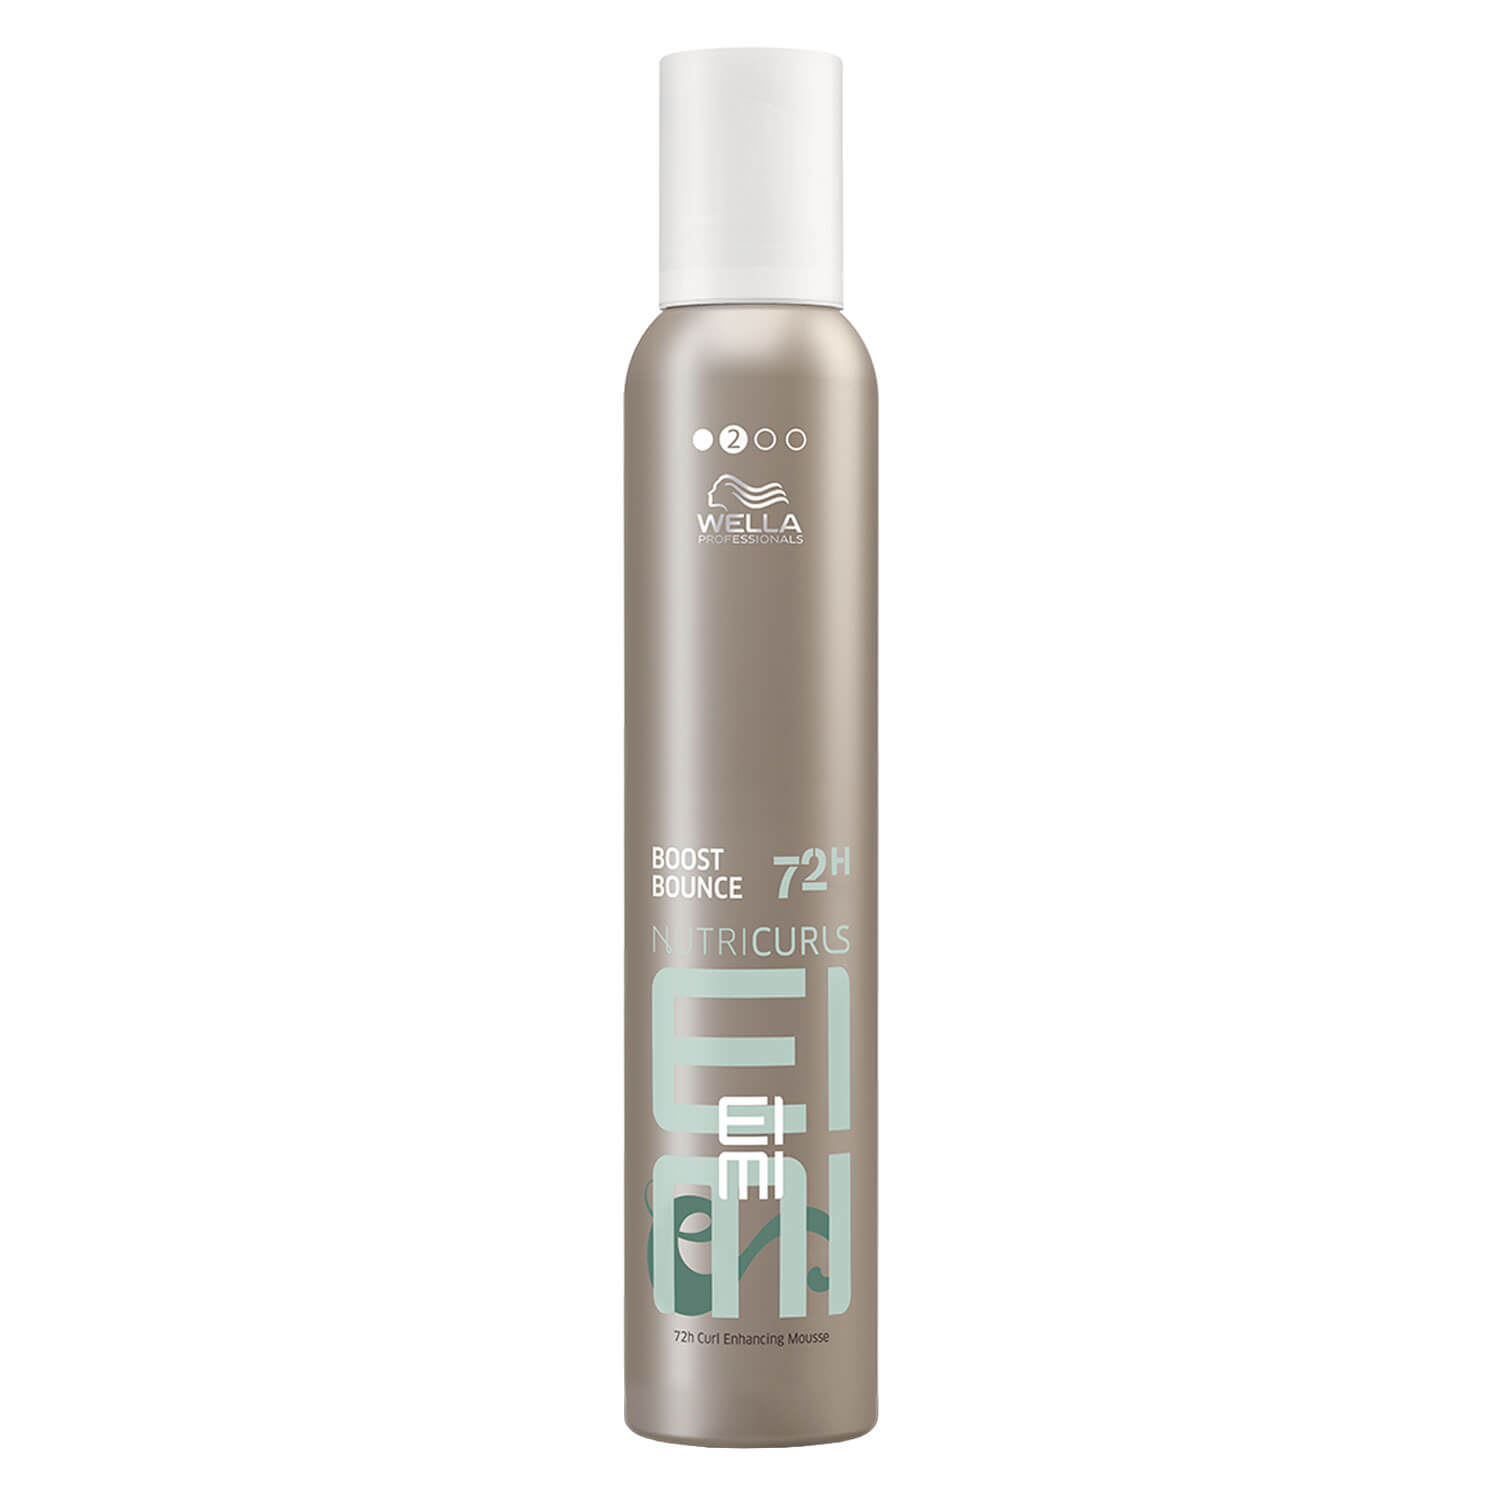 EIMI Texture - Nutricurls Boost Bounce - 300ml